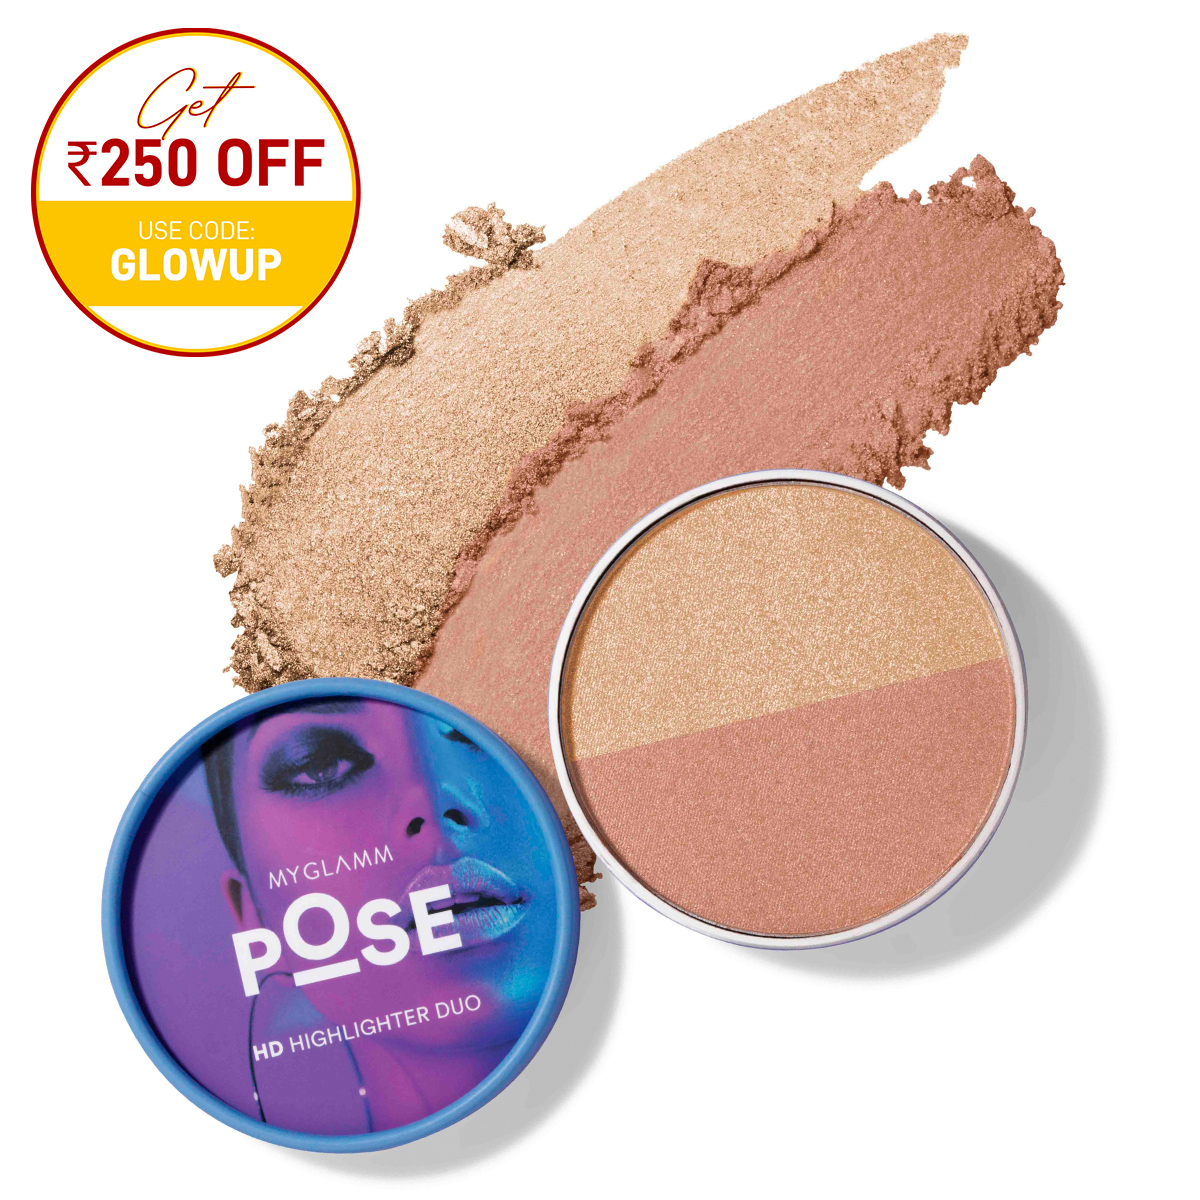 pose-hd-highlighter-duo-6